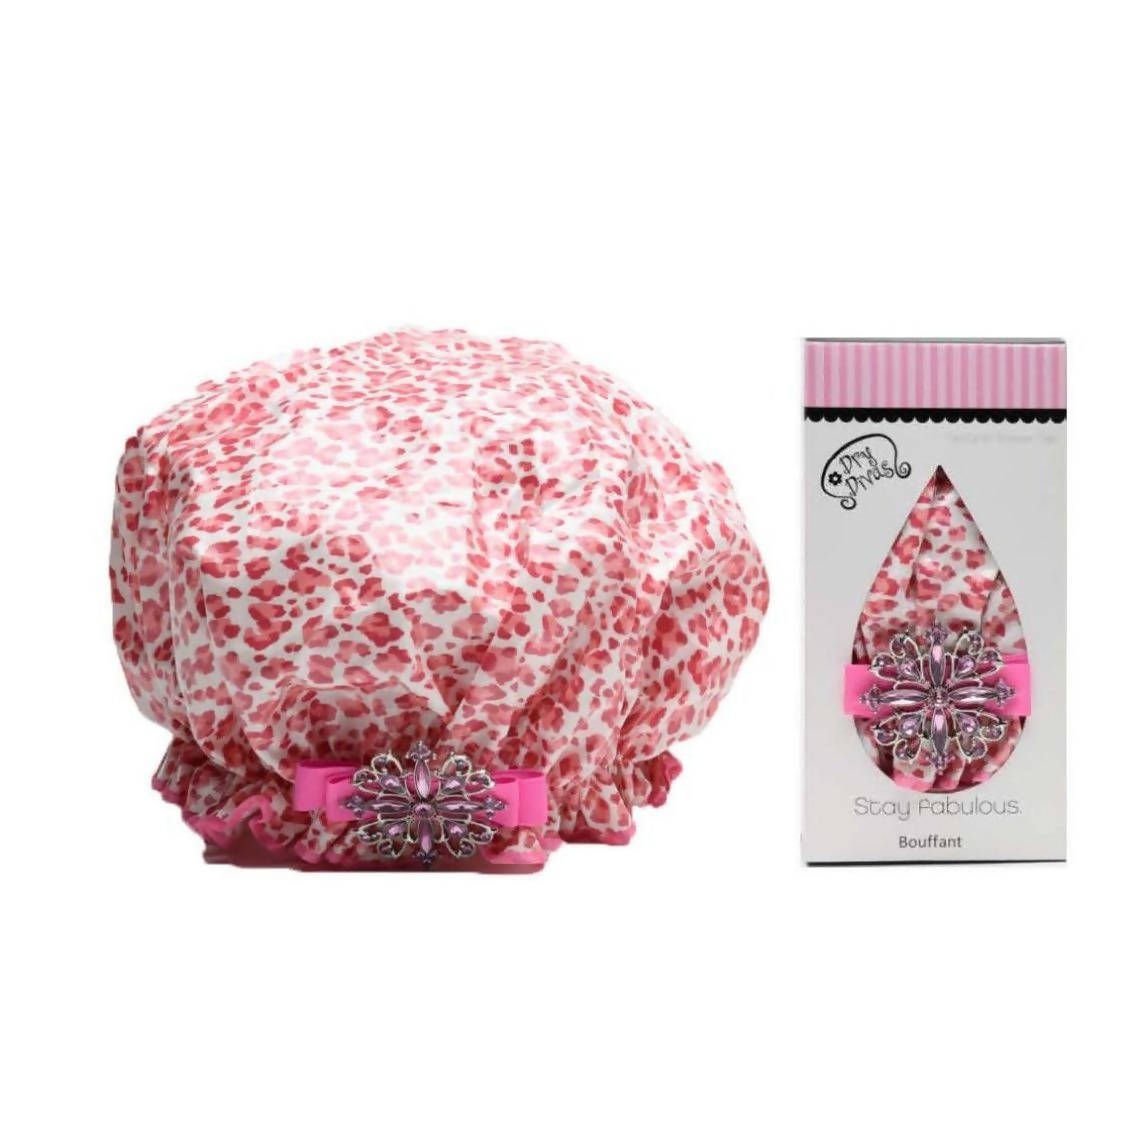 Cheetah-licious Bouffant Shower Cap